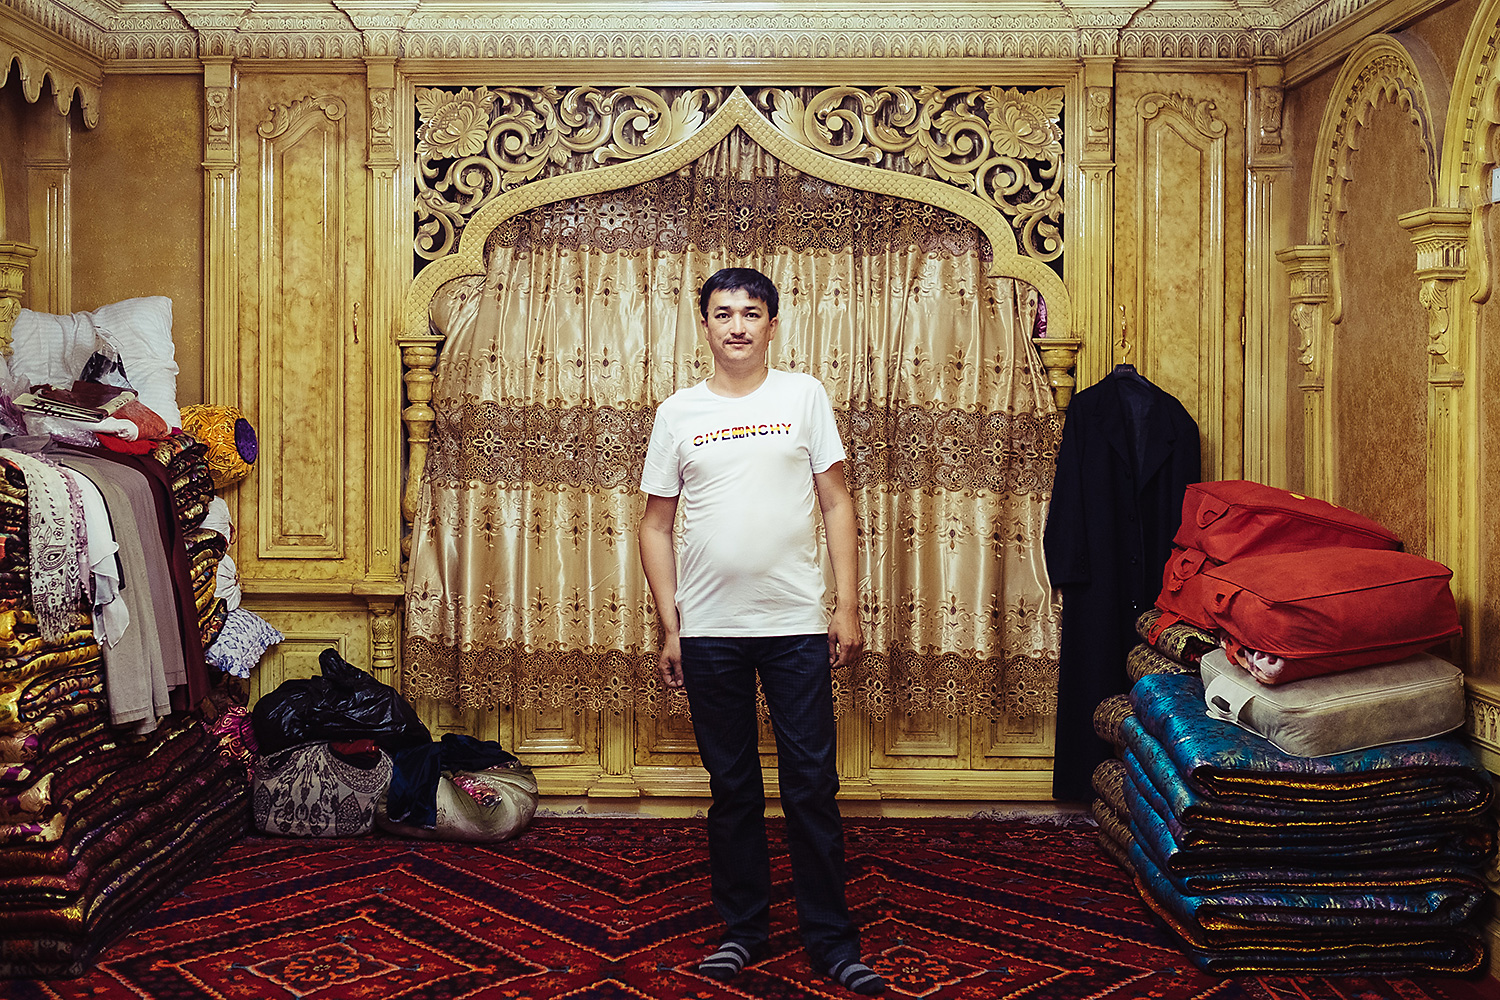 The businessman Ahmatjan, who only gave his first name, works in the clothing trade between Kashgar and Guangzhou. He lives in a large house in the center of Kashgar, and hopes to send his son to a soccer academy in Guangdong.